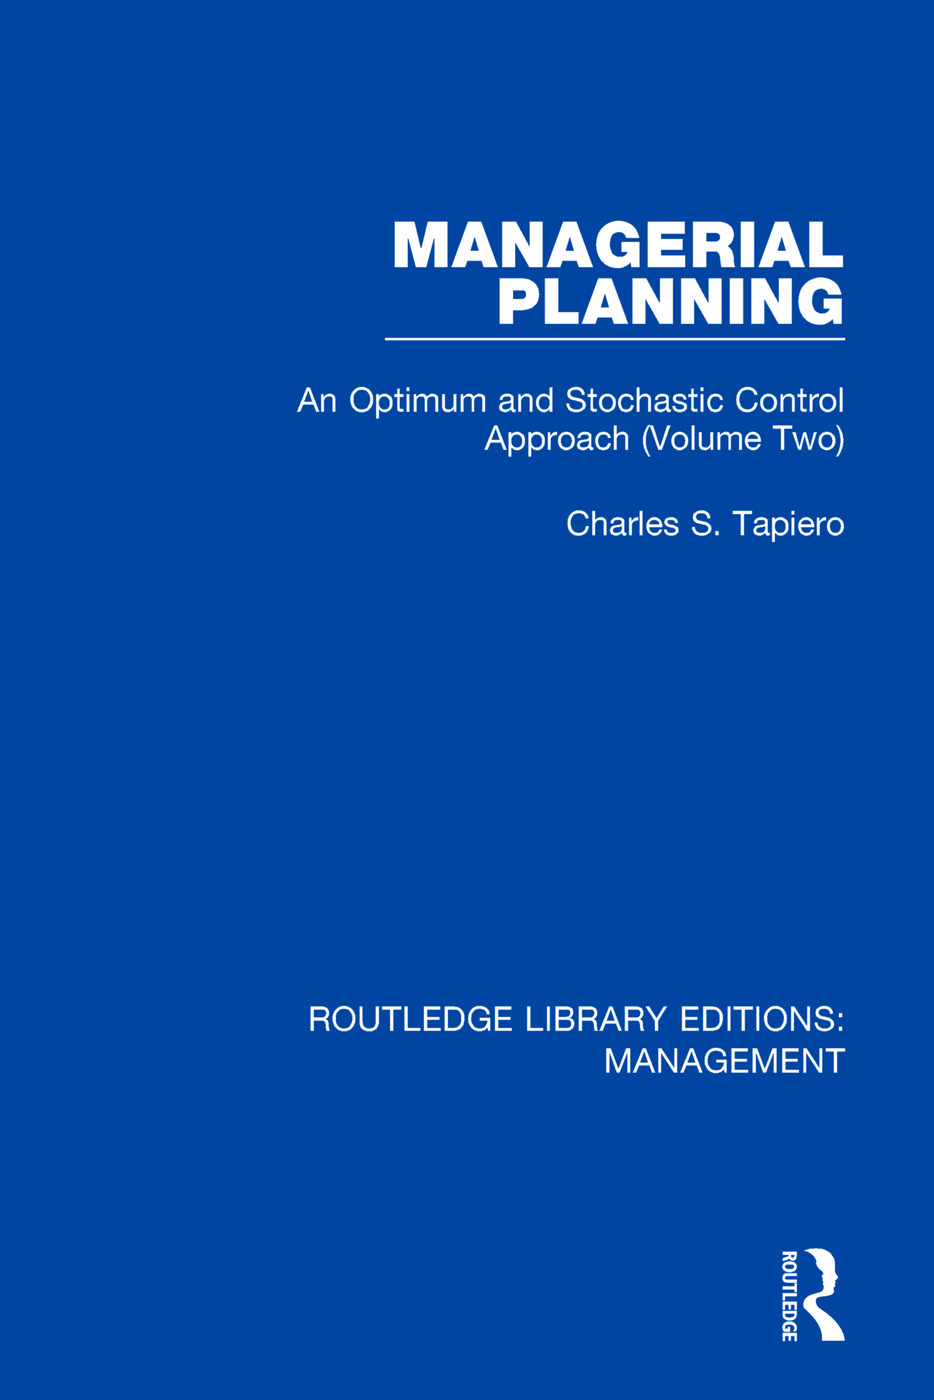 Managerial Planning: An Optimum and Stochastic Control Approach (Volume 2) book cover